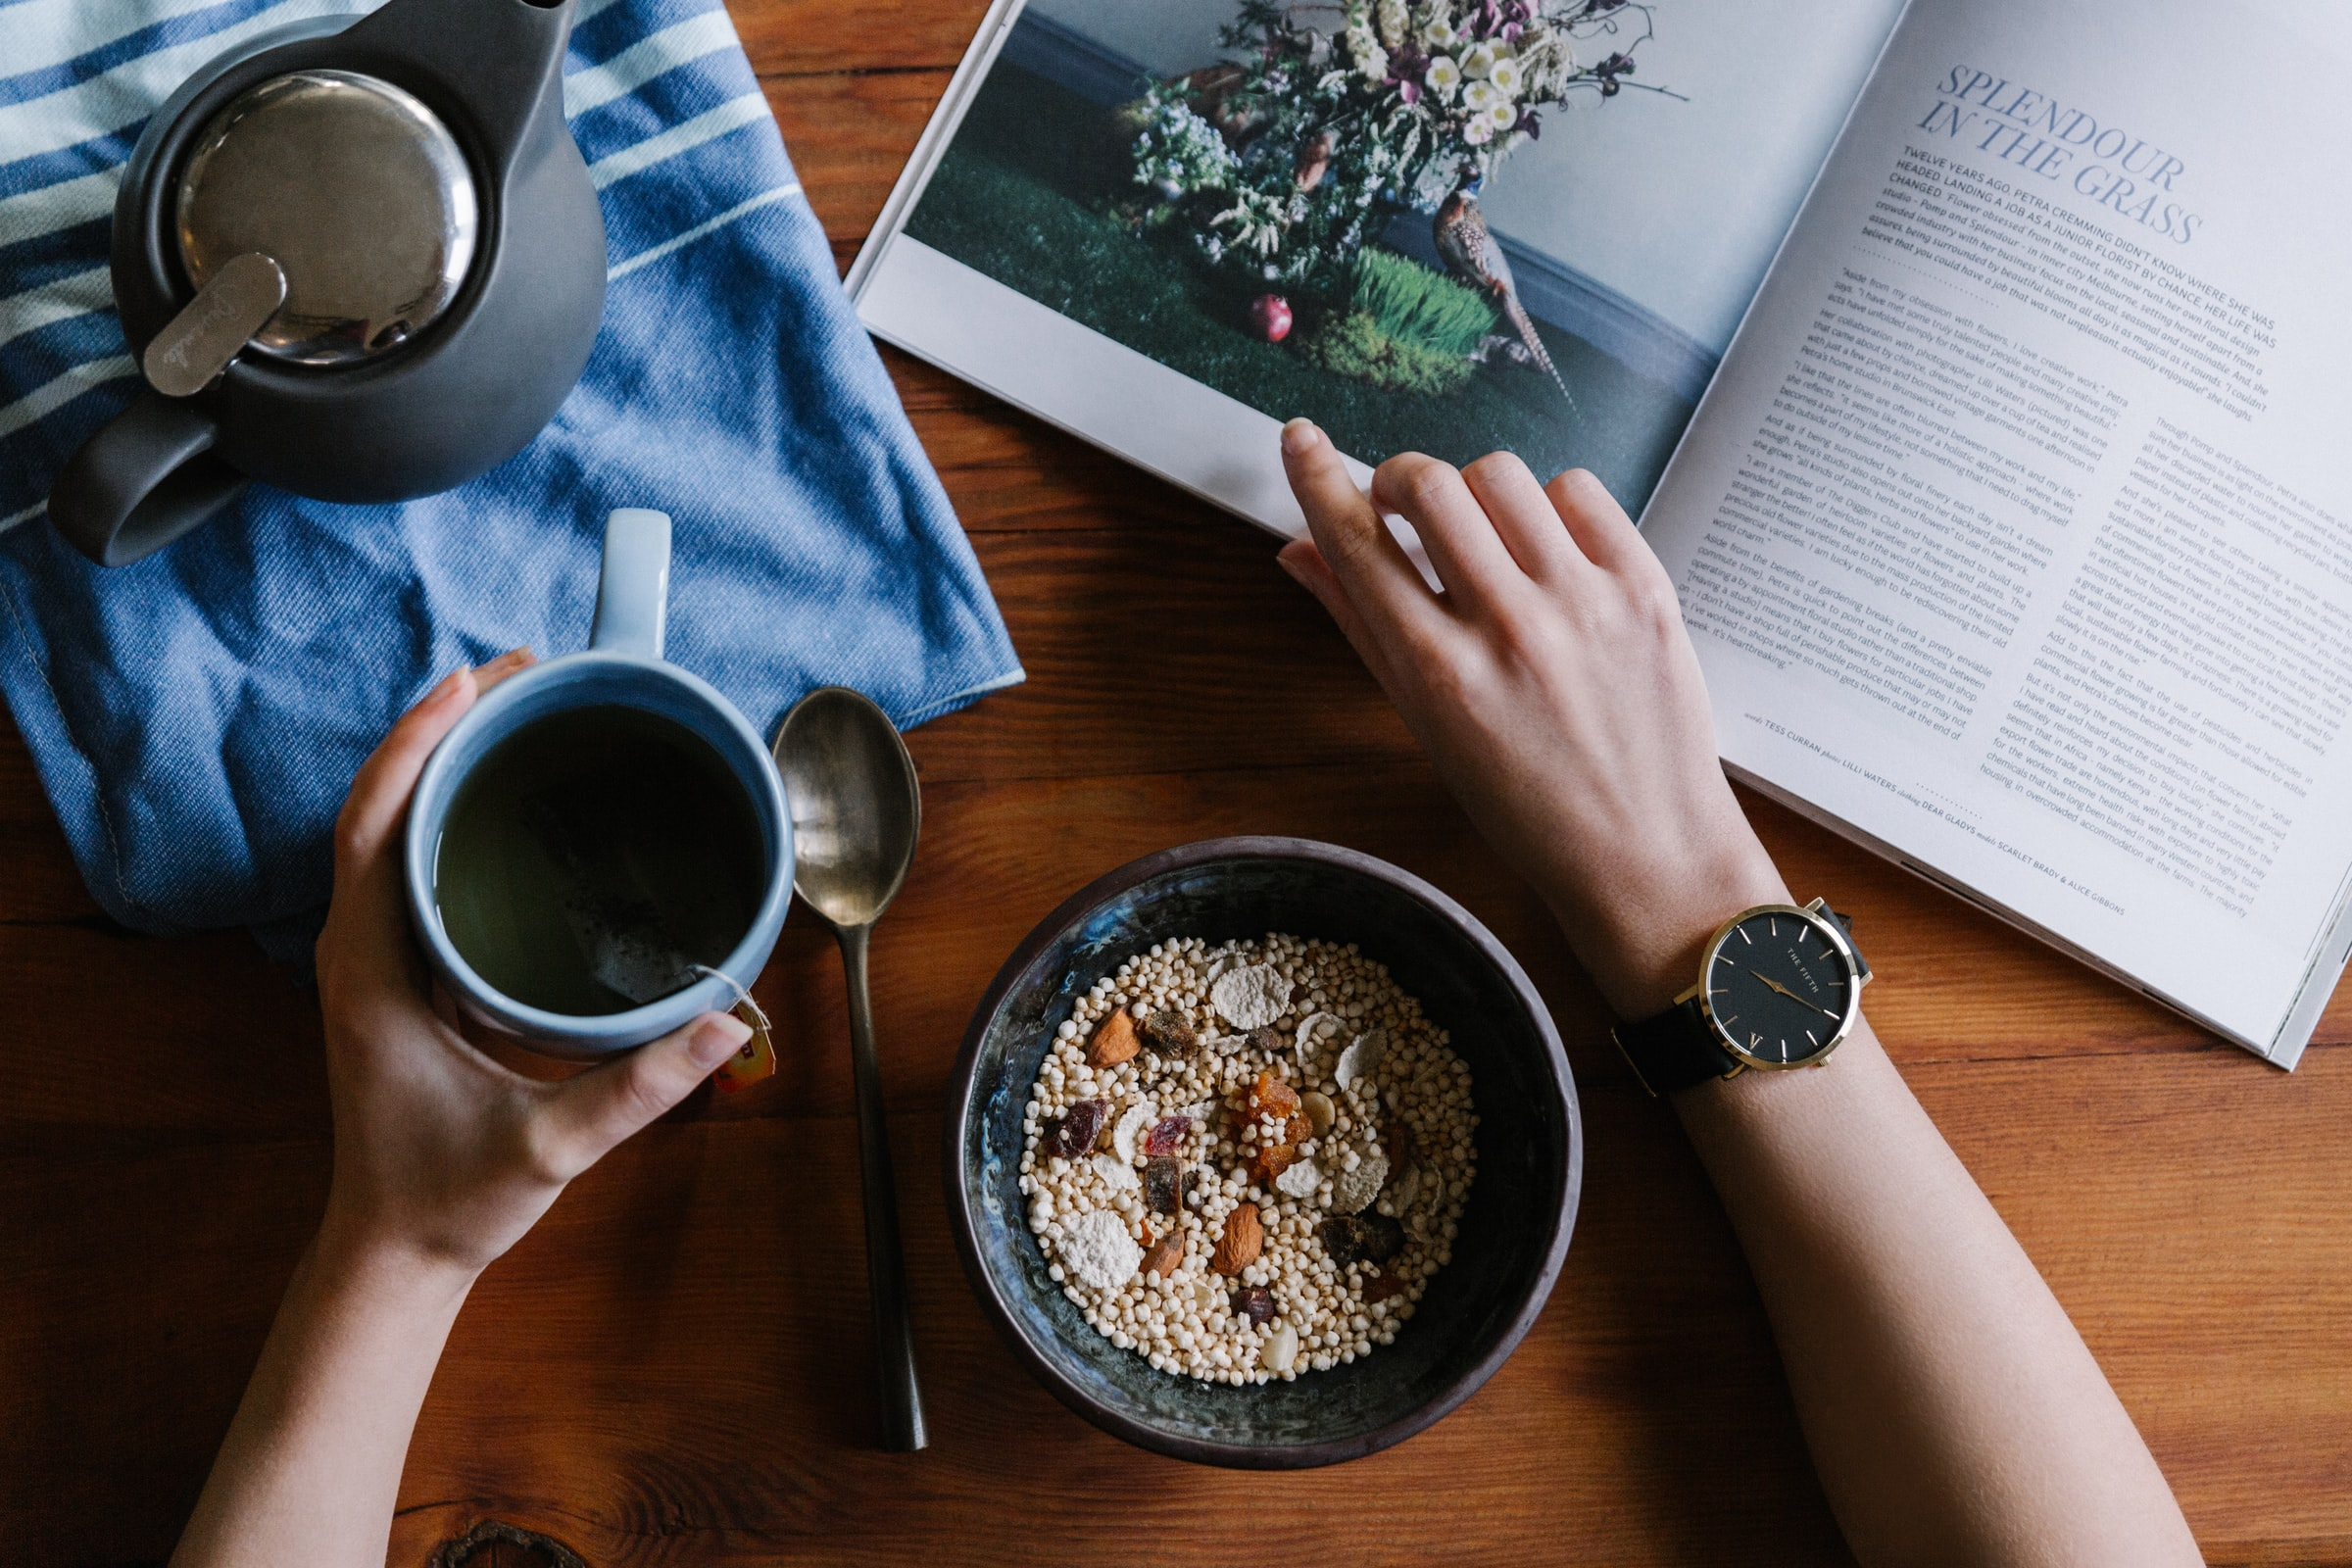 A person holding a coffee cup in their left hand and reading a magazine in their right hand. There is a bowl of cereal in the middle.